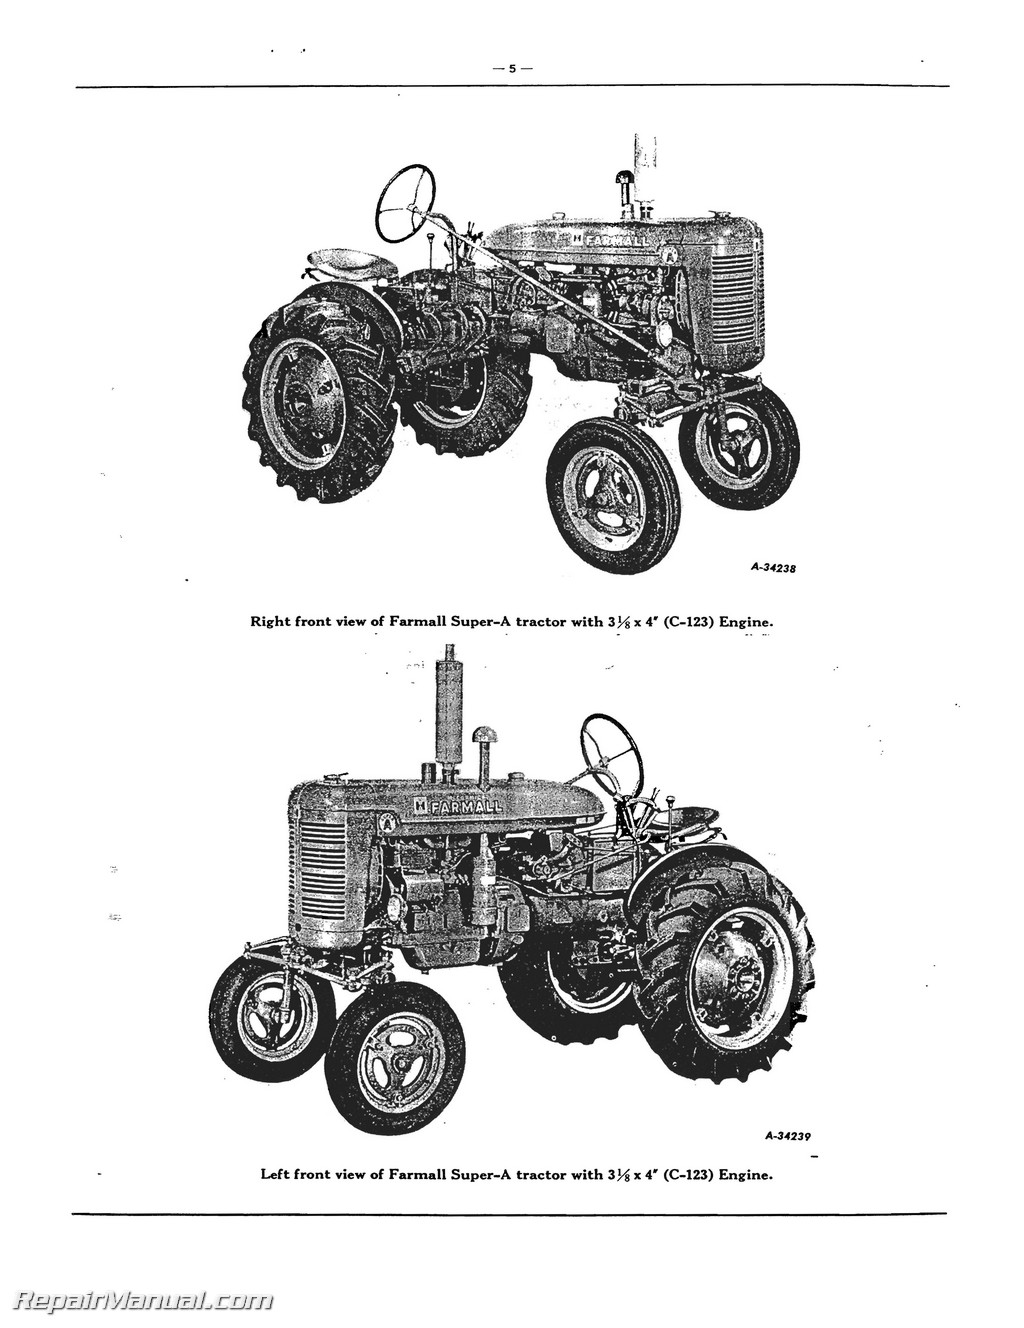 hight resolution of farmall super a av a 1 av 1 tractor parts manual farmall tractor parts transmission farmall tractor parts diagram